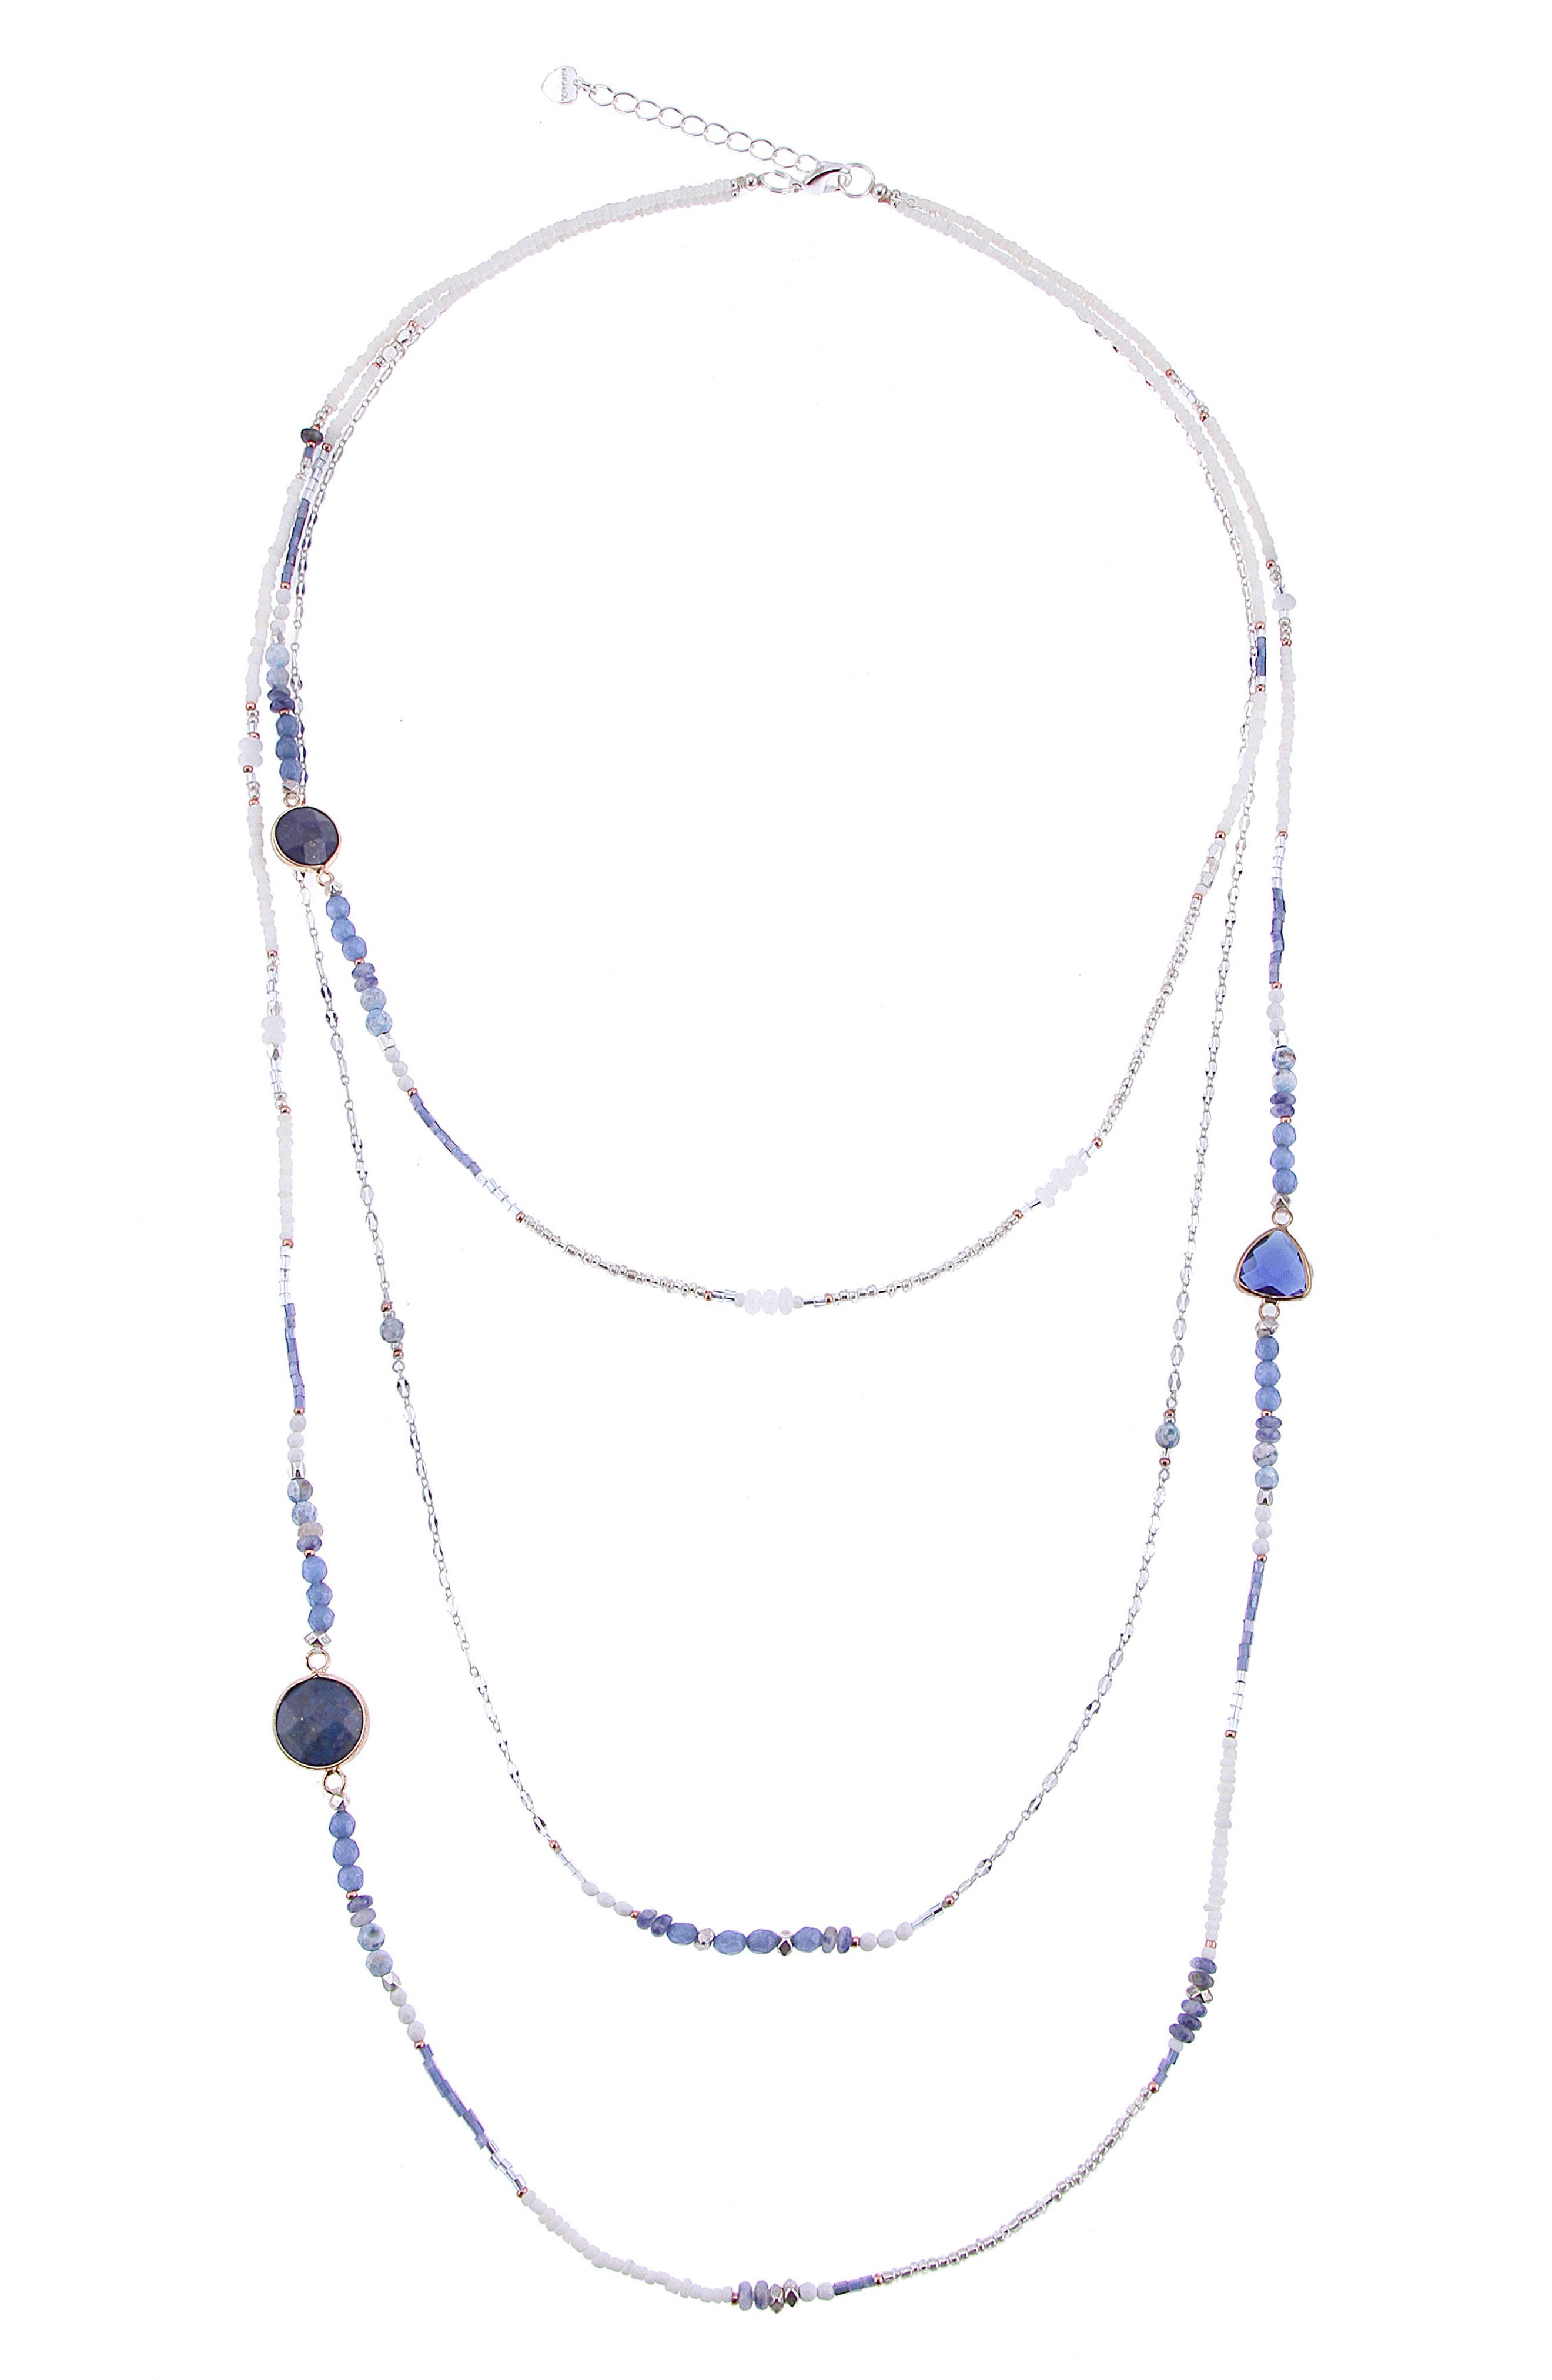 Agate & Crystal Triple Strand Necklace,                             Main thumbnail 1, color,                             400